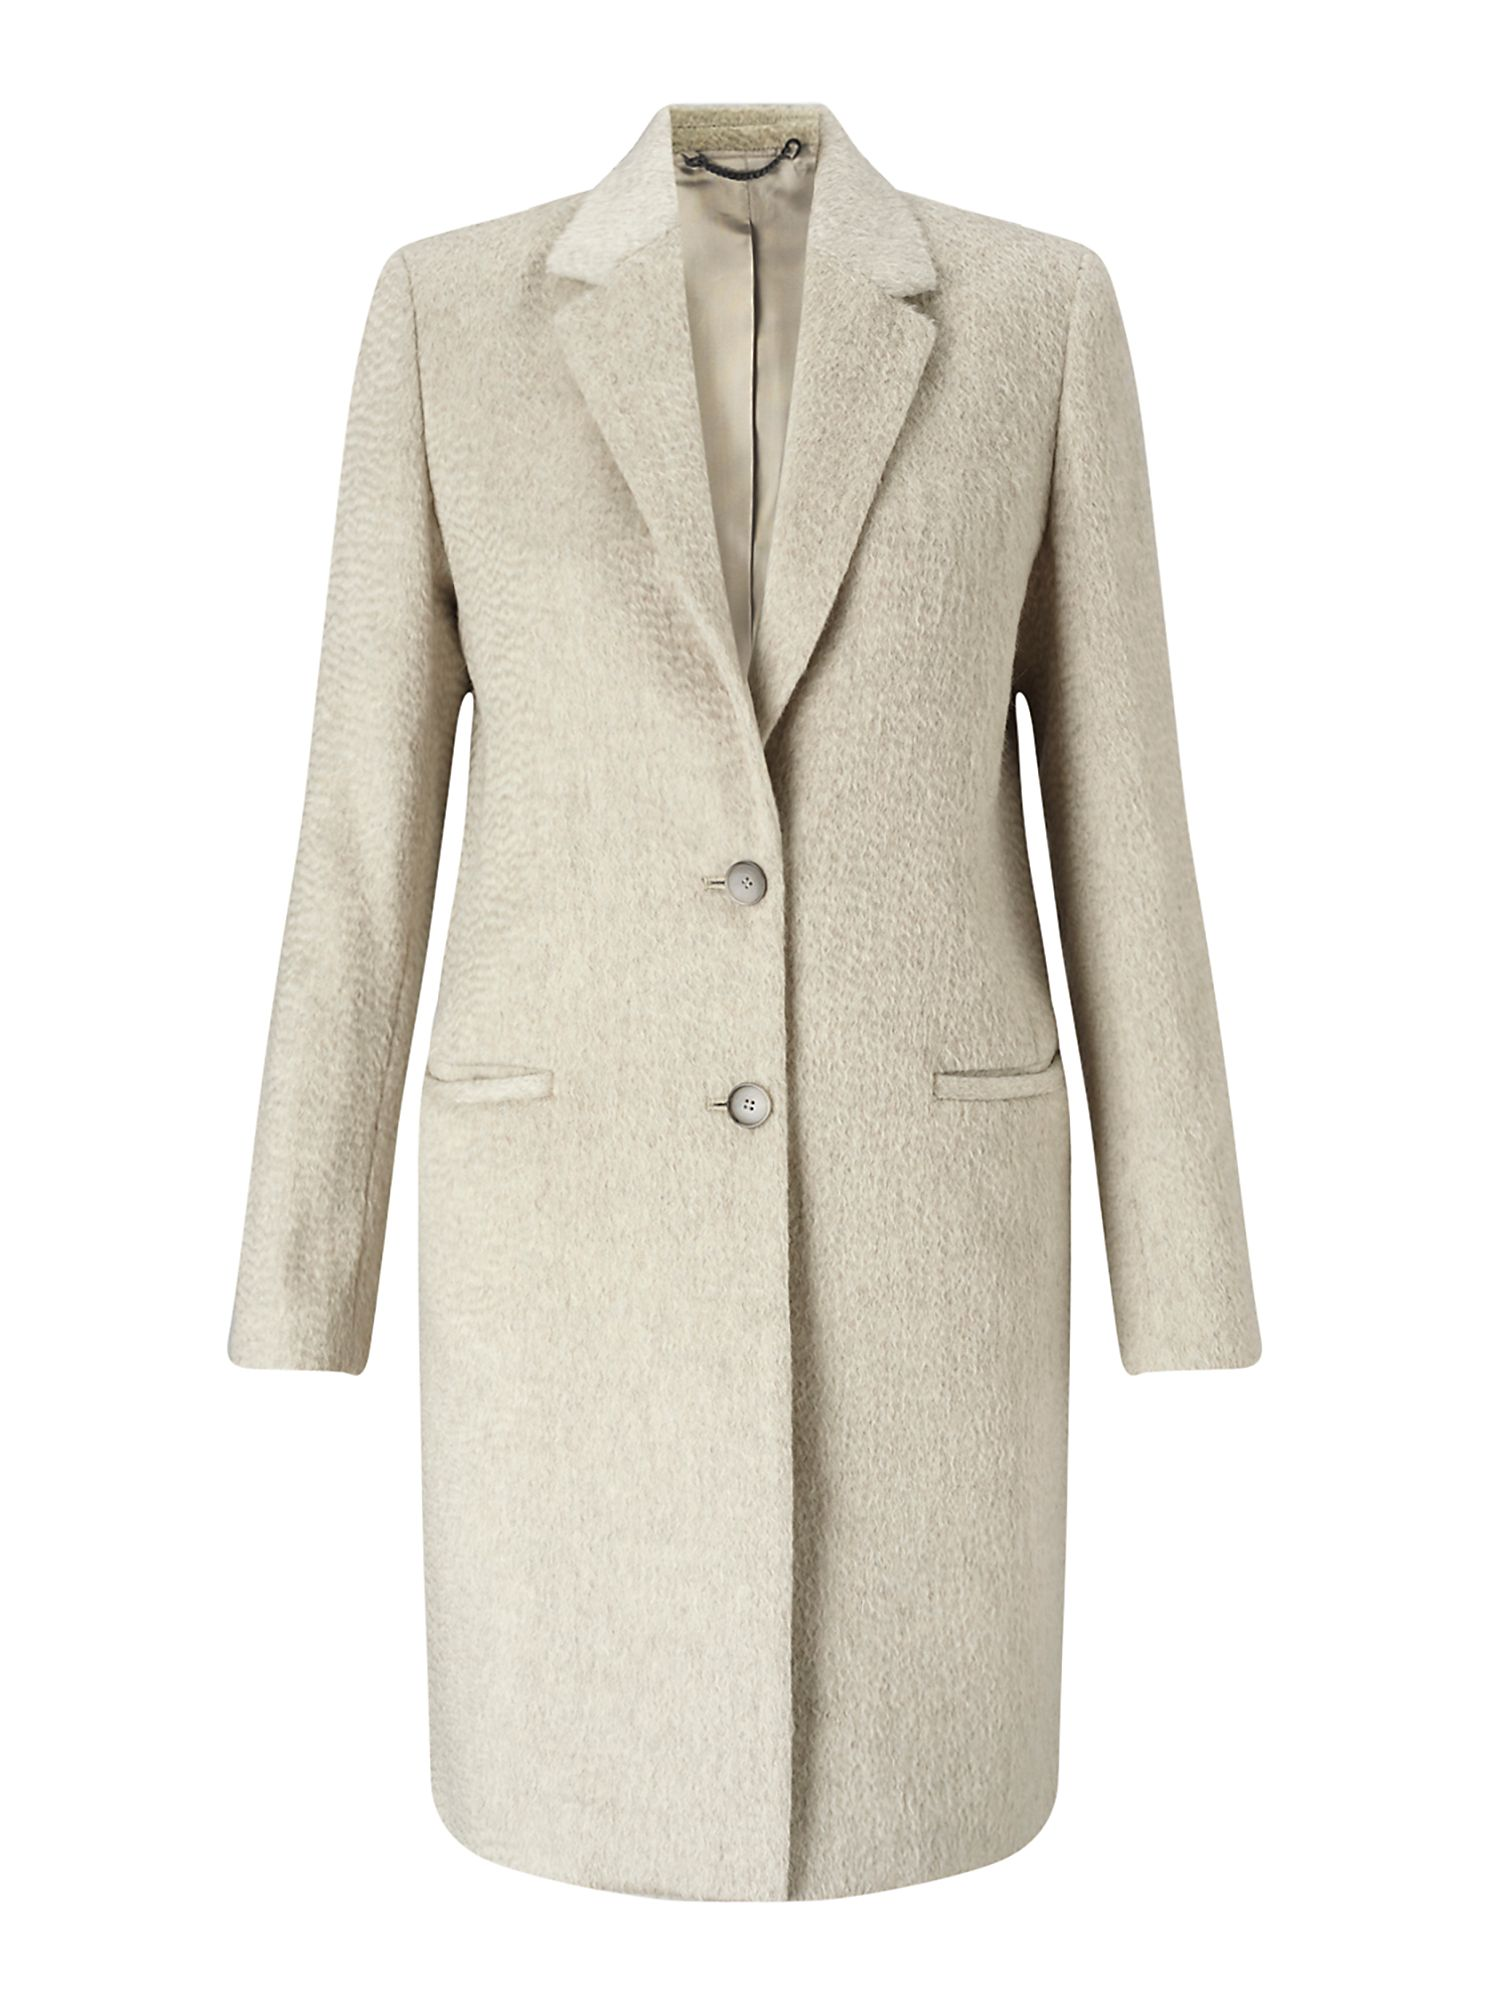 Jigsaw Sb City Wool Coat, Cream